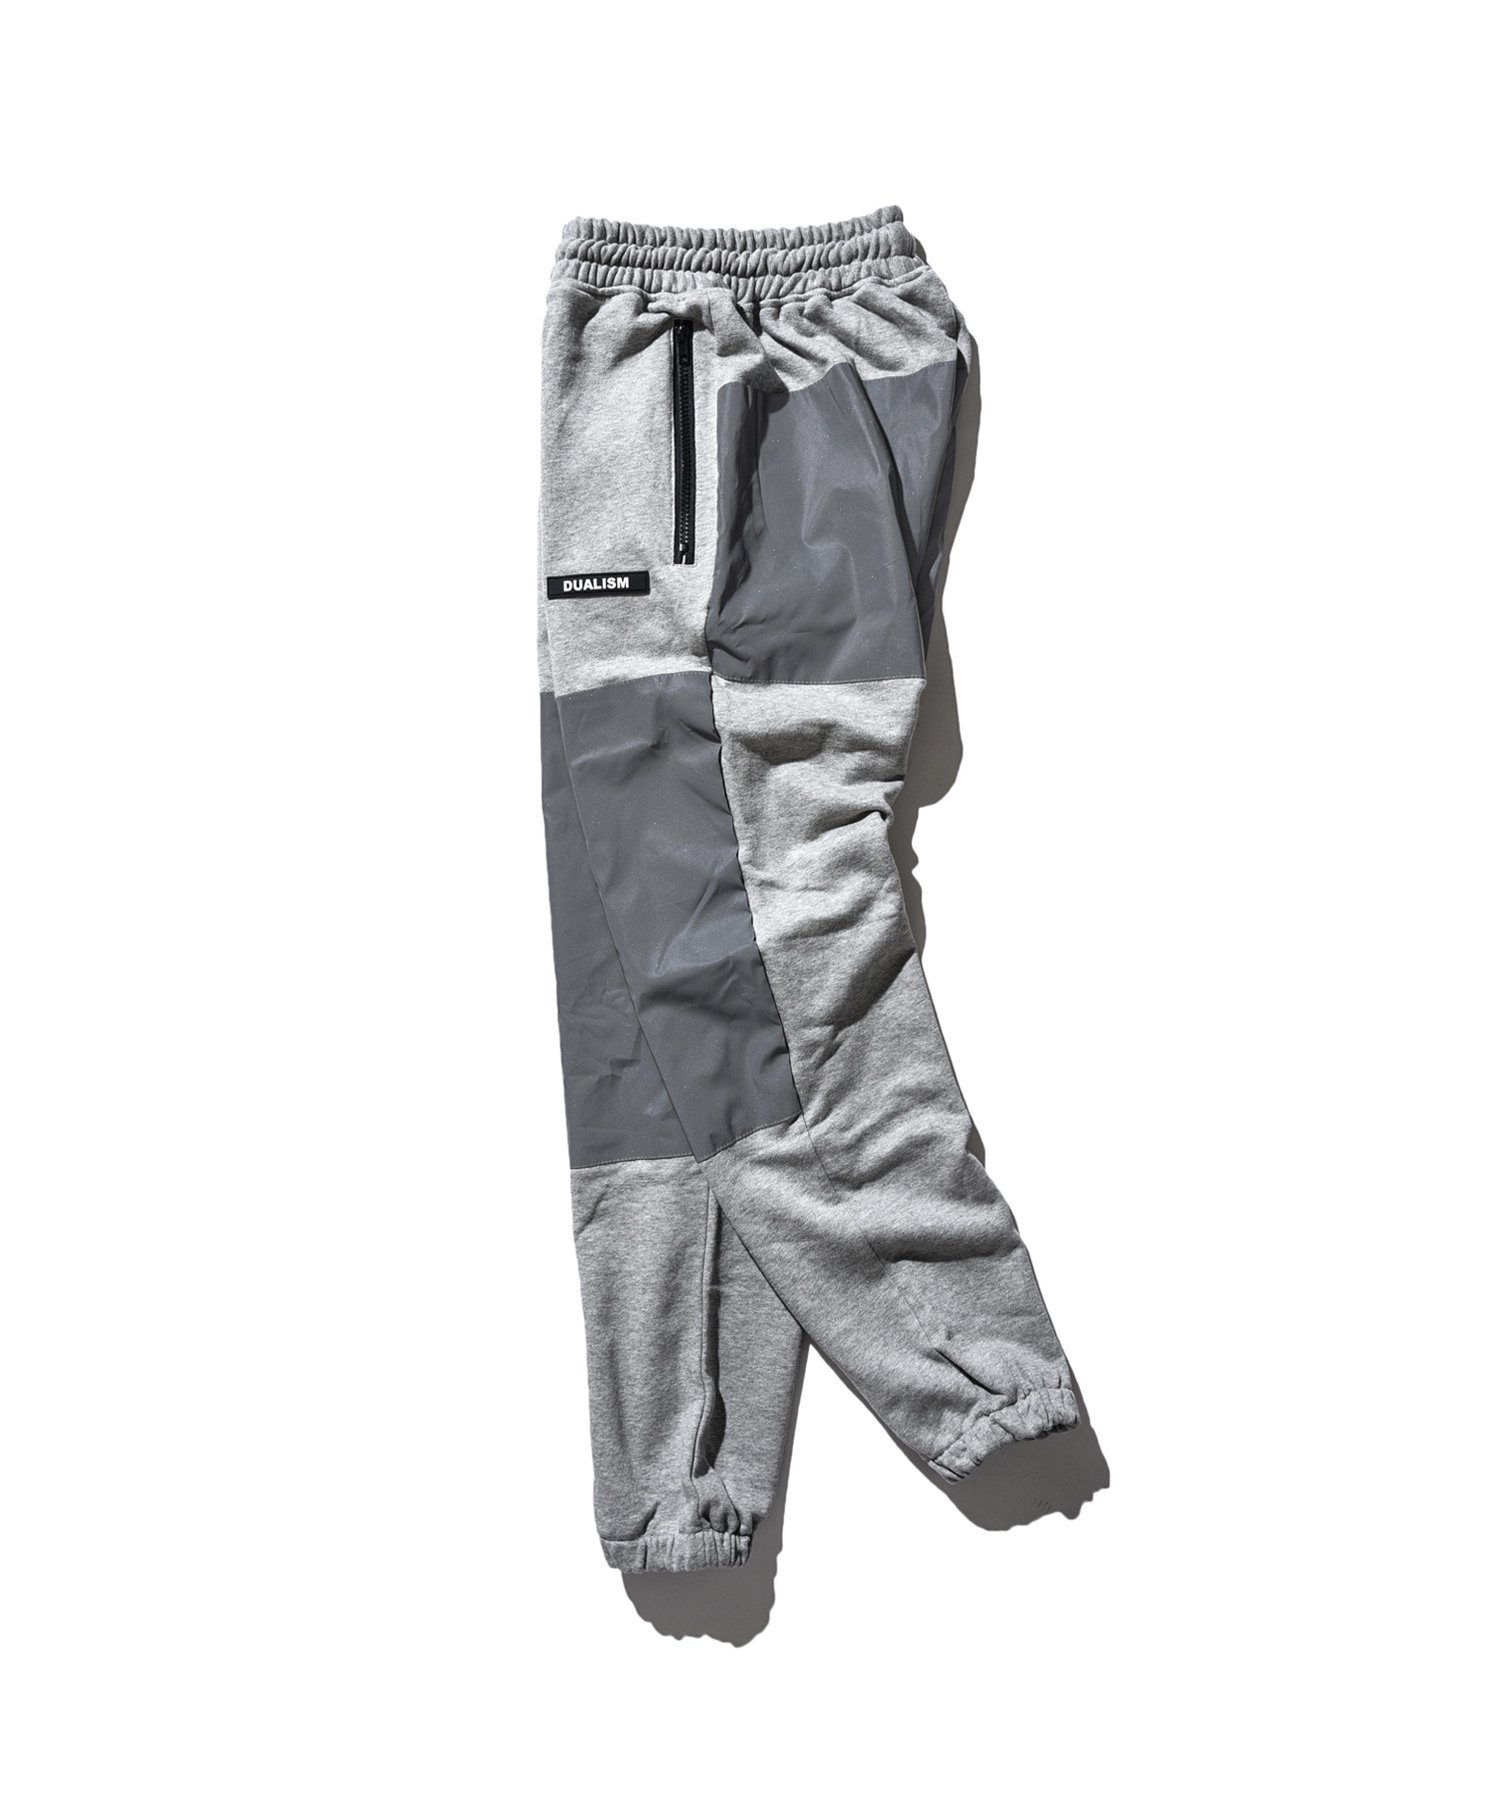 DUALISM REFLECT SWITCH PANTS